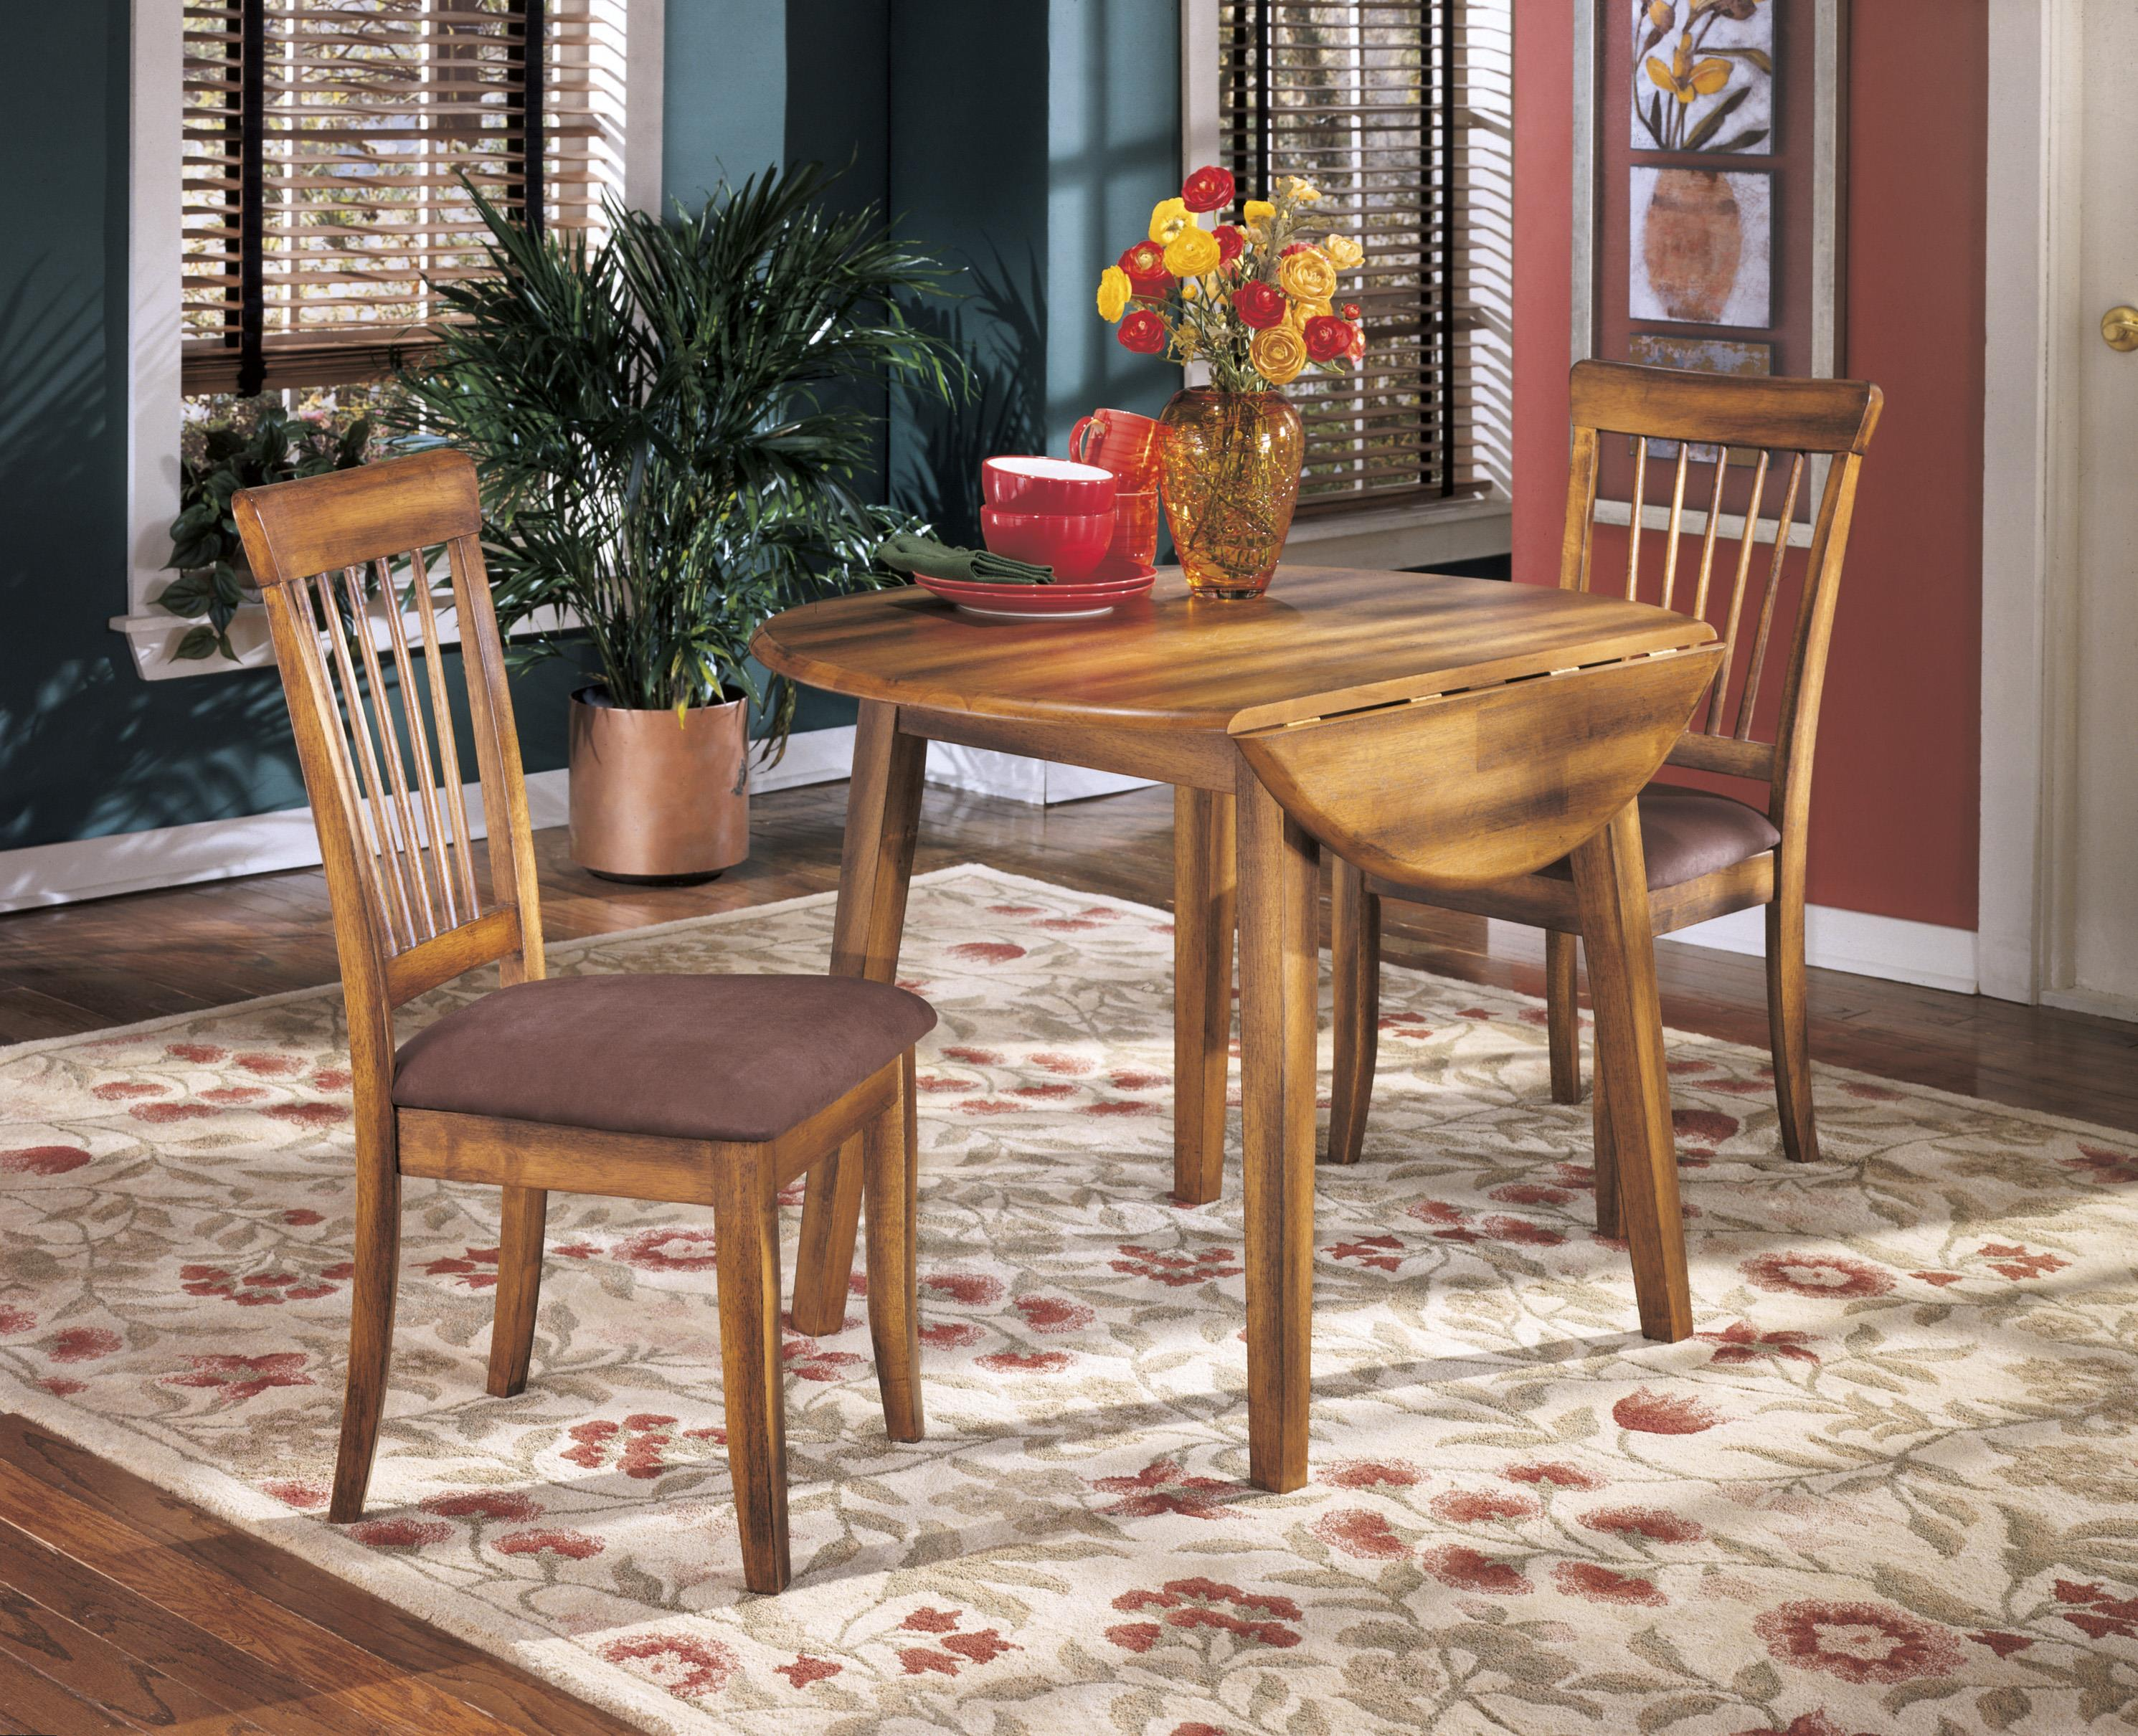 ashley furniture kitchen table and chairs sit stand chair reviews berringer hickory stained hardwood round